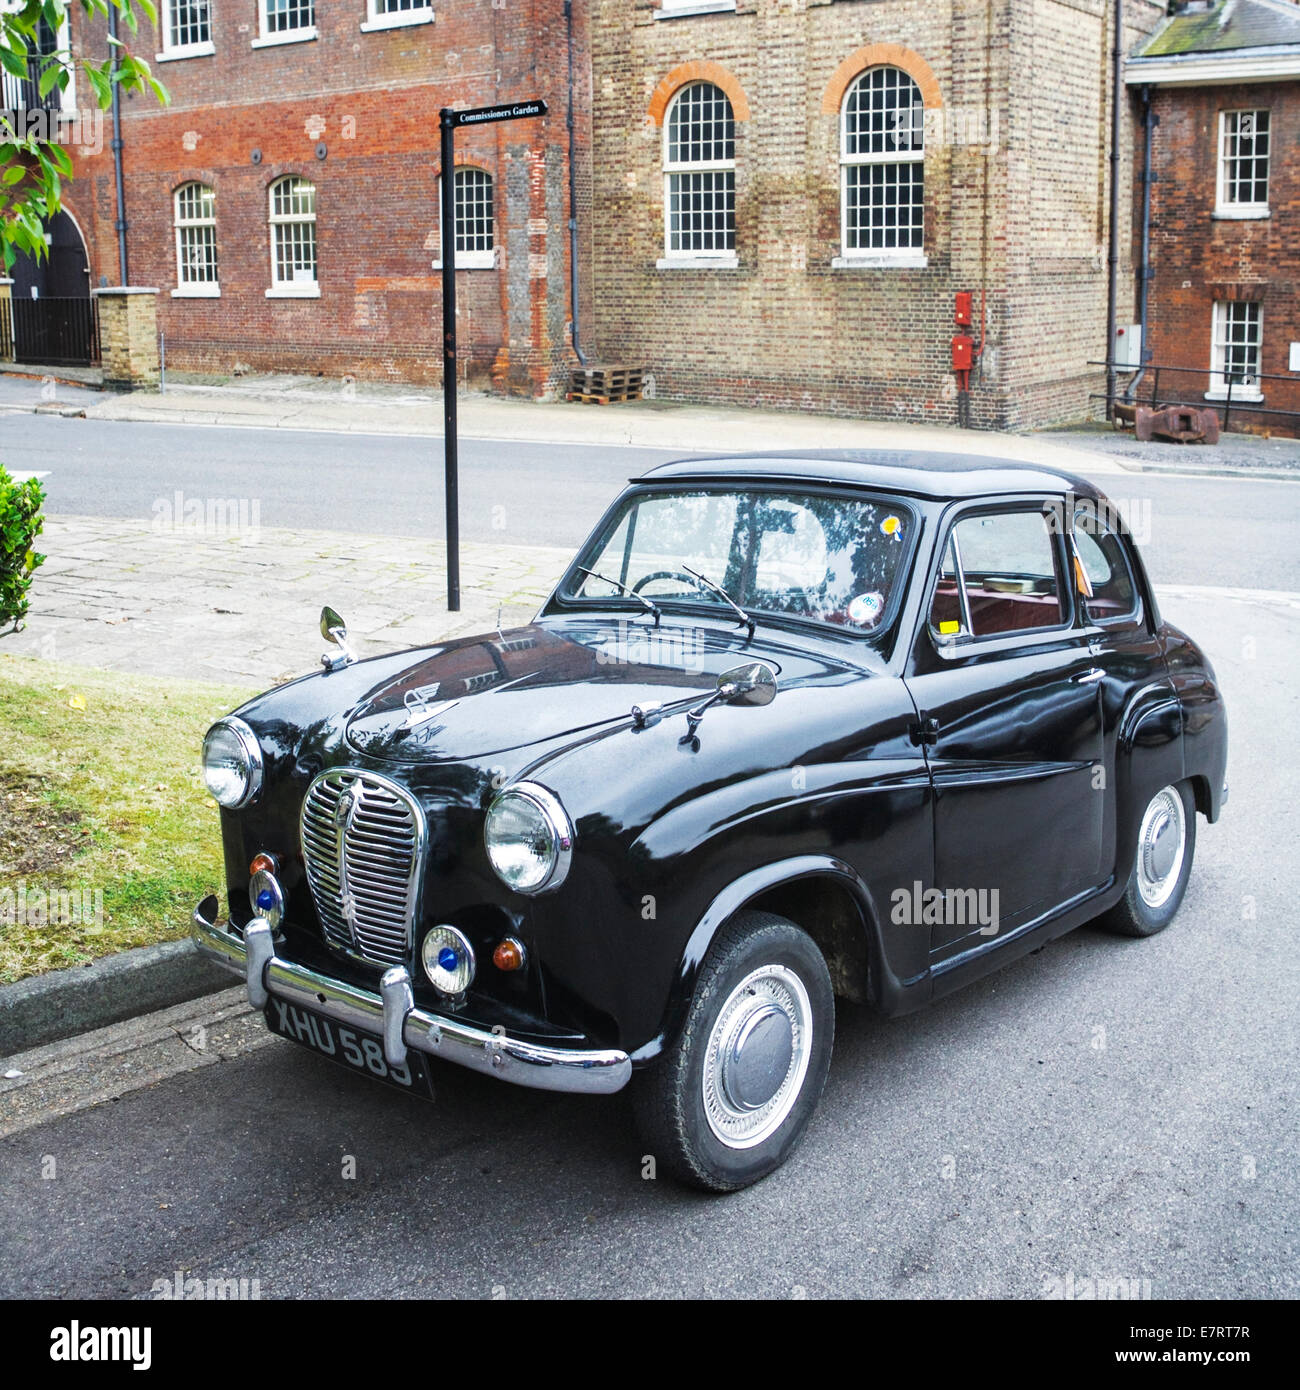 austin a30 a black old british car cars at chatham. Black Bedroom Furniture Sets. Home Design Ideas